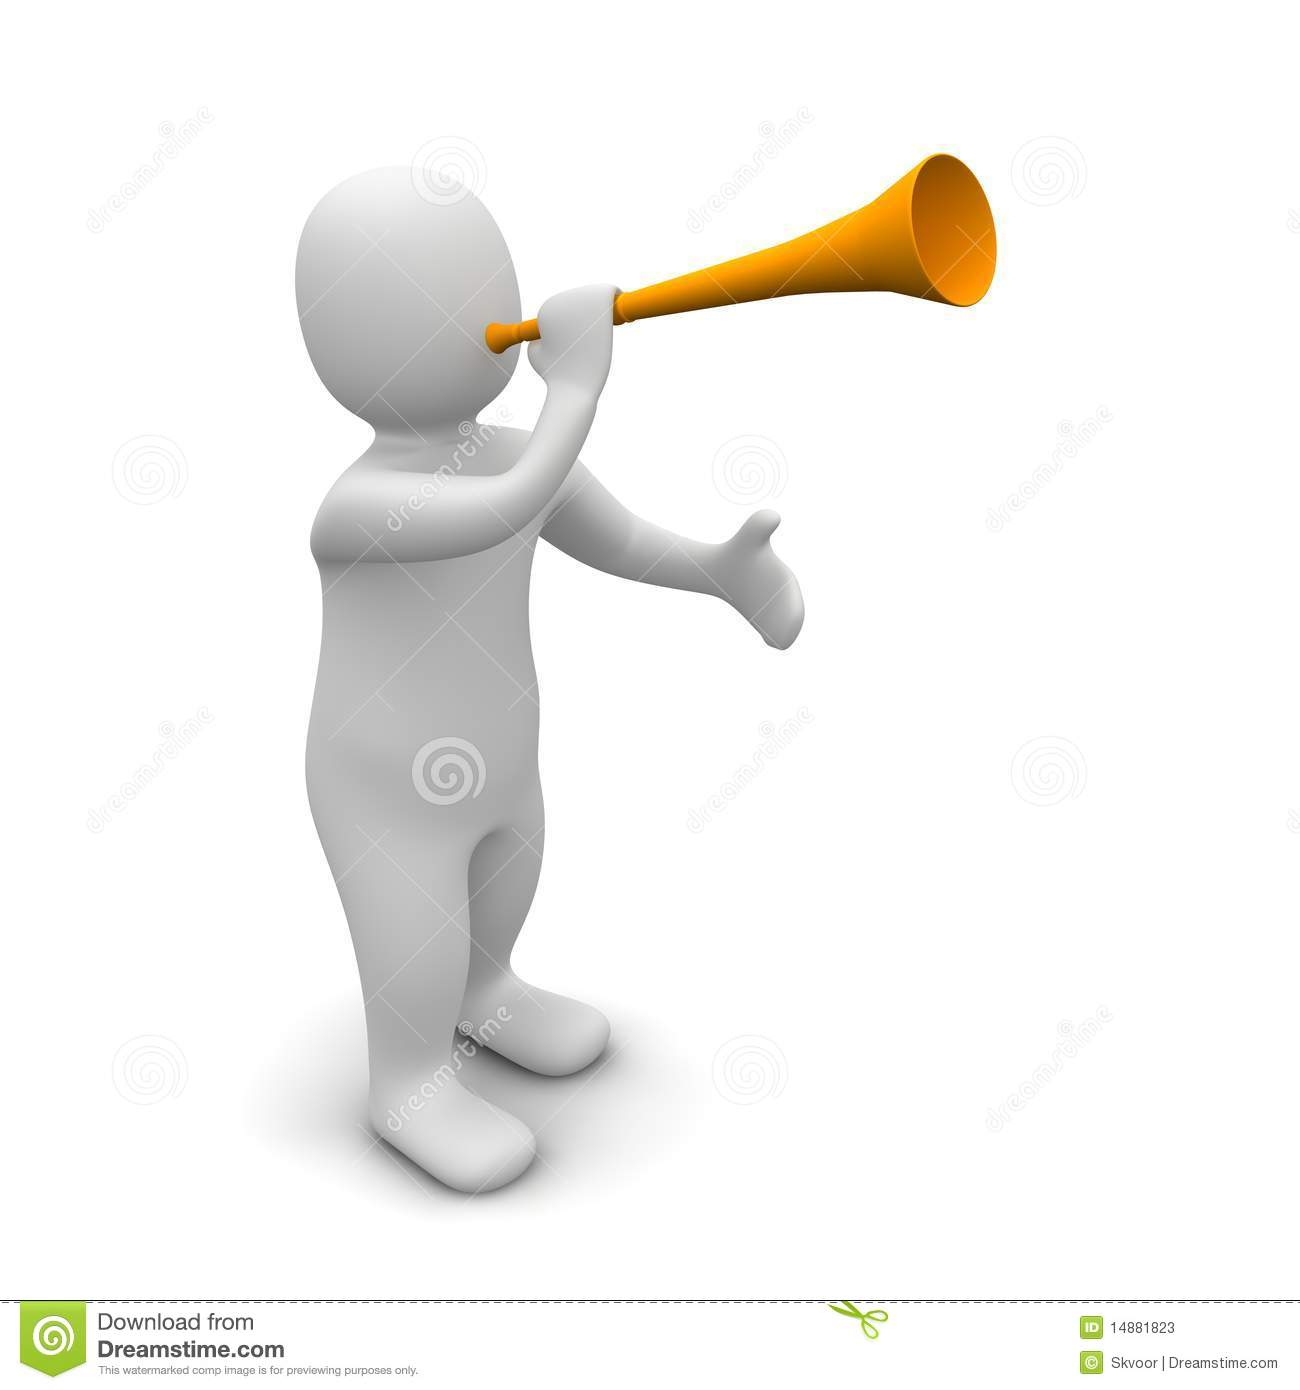 Watch also Teletubbies GoAnimate further Bill Brookman in addition Insane Anime Characters List besides Hip Hop Dancer Clipart. on cartoon guy playing trumpet